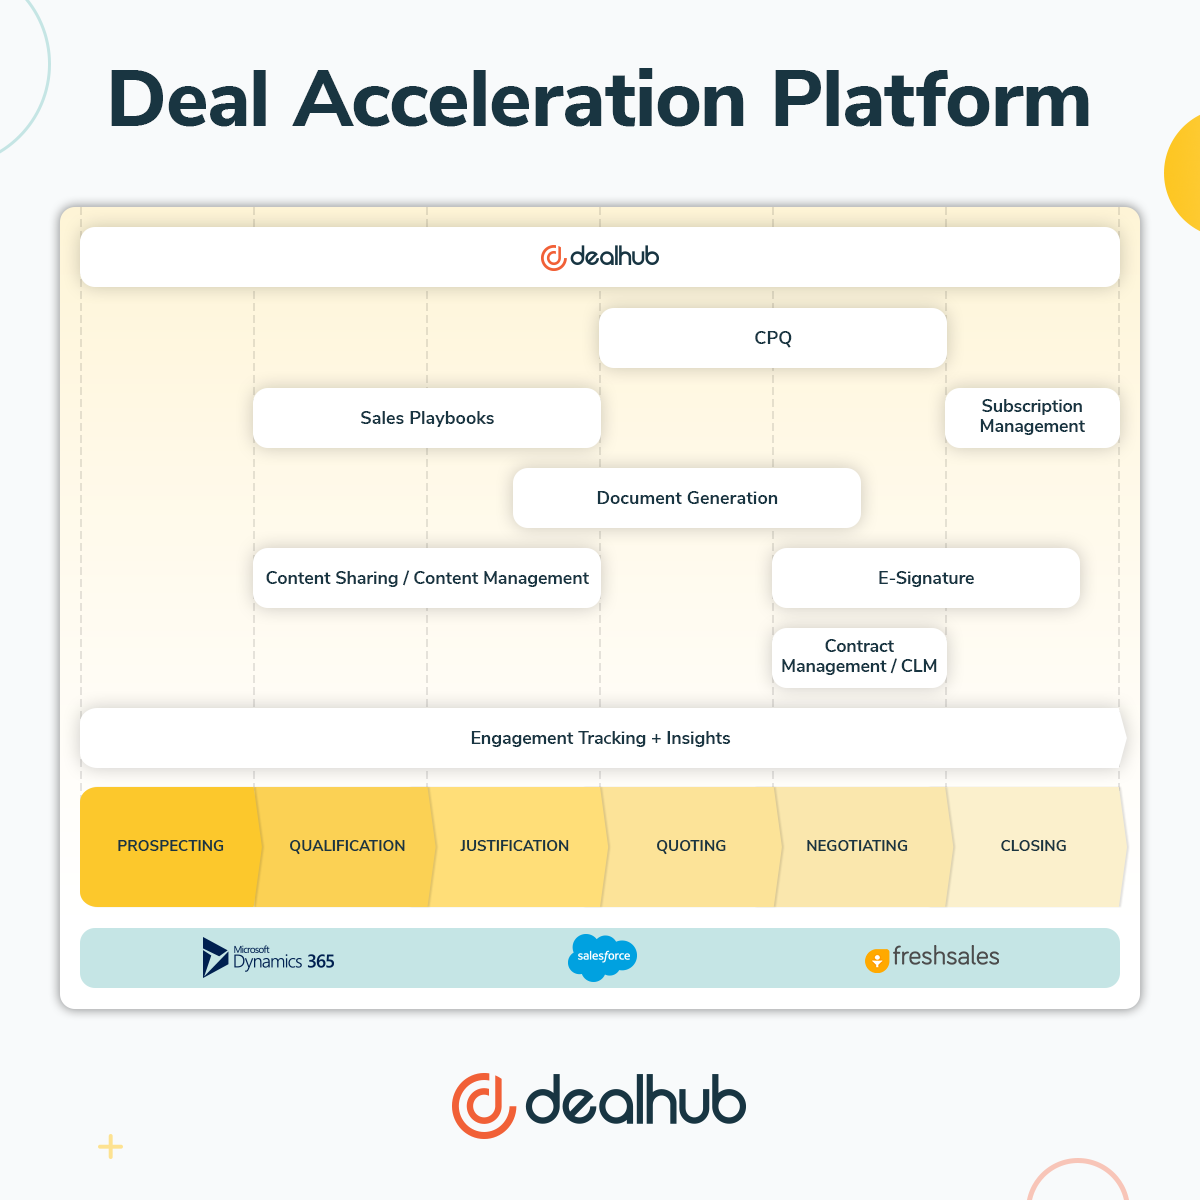 Deal Acceleration Platform infographic-1